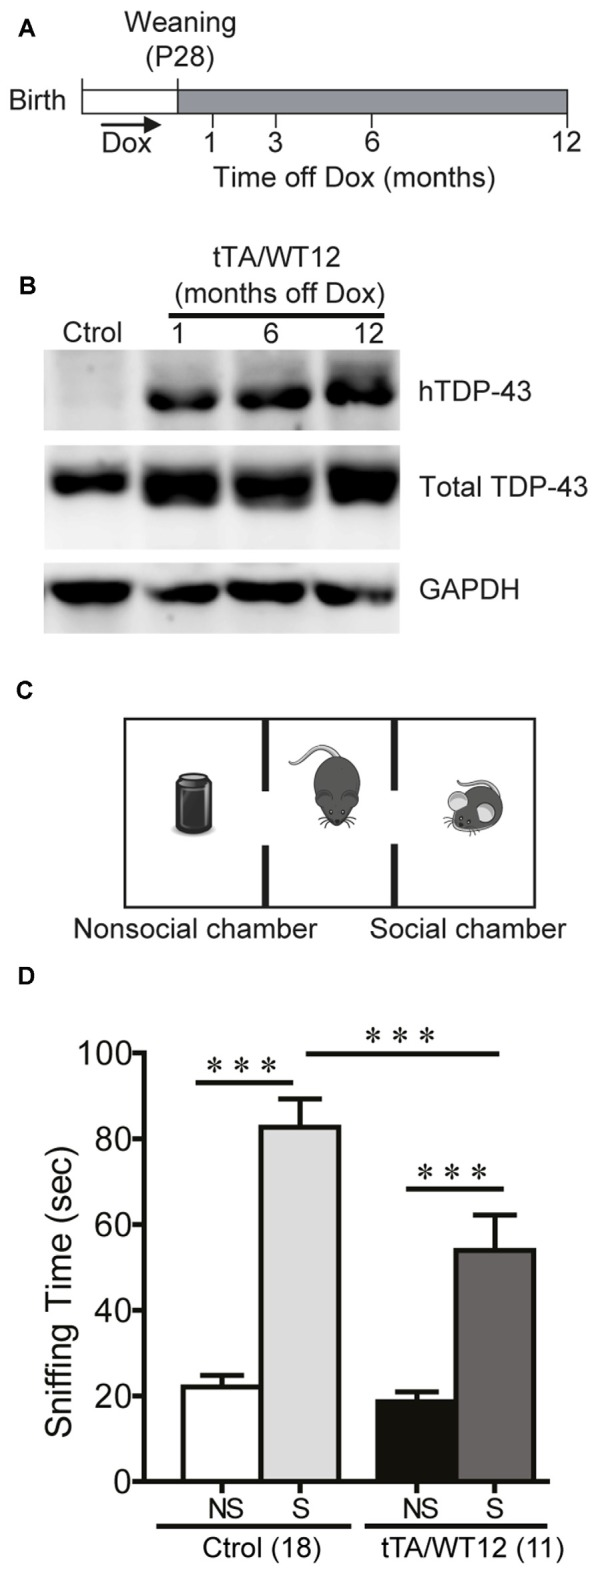 Altered social behavior in TDP-43-WT transgenic (Tg) mice. (A) Experimental design: transgene expression was activated at weaning (postnatal day 28) by removing Dox from water. The behavioral responses of these Tg mice were analyzed at the indicated time points after weaning. (B) Expression of human TAR DNA-binding protein 43 (TDP-43) in Tg mice. Immunoblot of hTDP-43 or total TDP-43 (h+mTDP-43) in cortical RIPA extracts of control (non-Tg) and tTA/WT12 (1, 6 or 12 months off Dox) mice. GAPDH is a loading control. (C) Schematic view of the three-chamber social interaction apparatus, consisting of a black Plexiglas rectangular box with three interconnected chambers. (D) Time spent sniffing the social (S; P21-P28 mouse) or the non–social (NS; black plastic object) stimulus during a 10 min session (test phase) was recorded. 1 month off Dox bigenic mice (tTA/WT12) presented a reduced social interaction time during the session (*** p